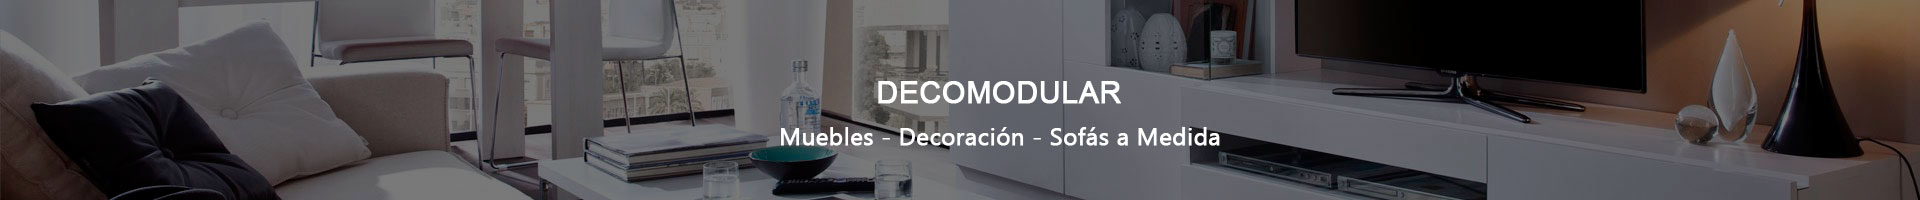 Decomodular - Muebes y Decoración